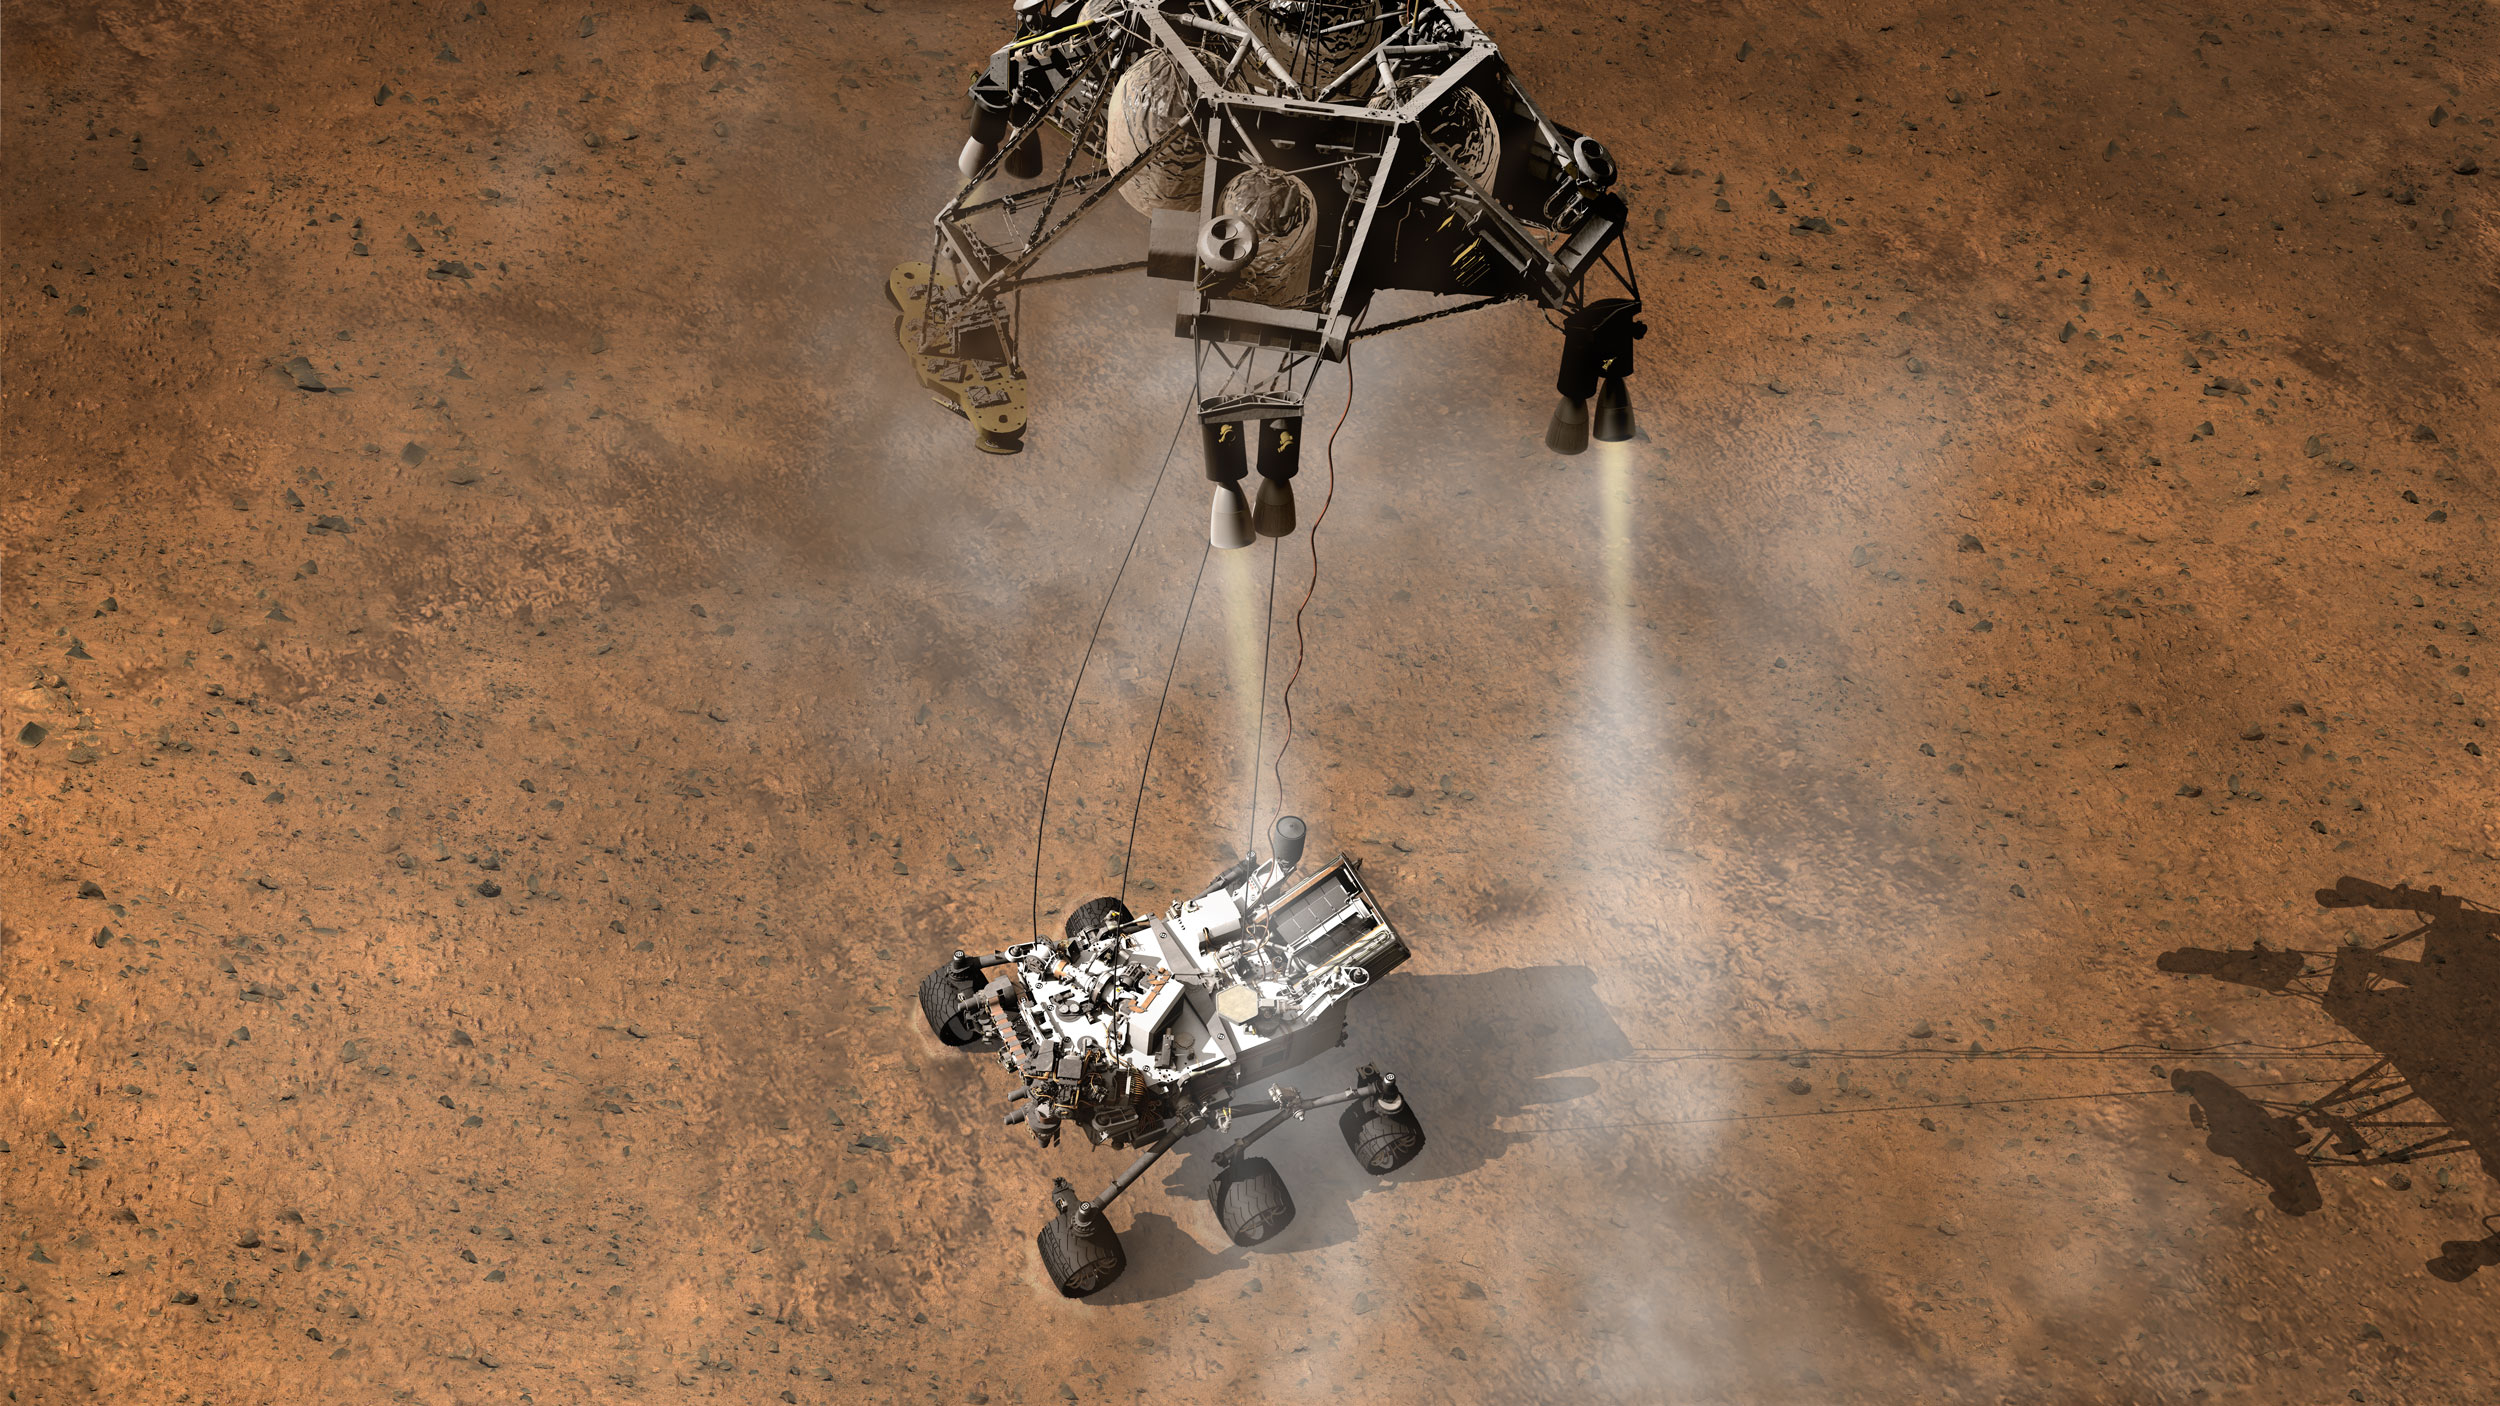 This artist's concept depicts the moment immediately after NASA's Curiosity rover touches down onto the Martian surface.